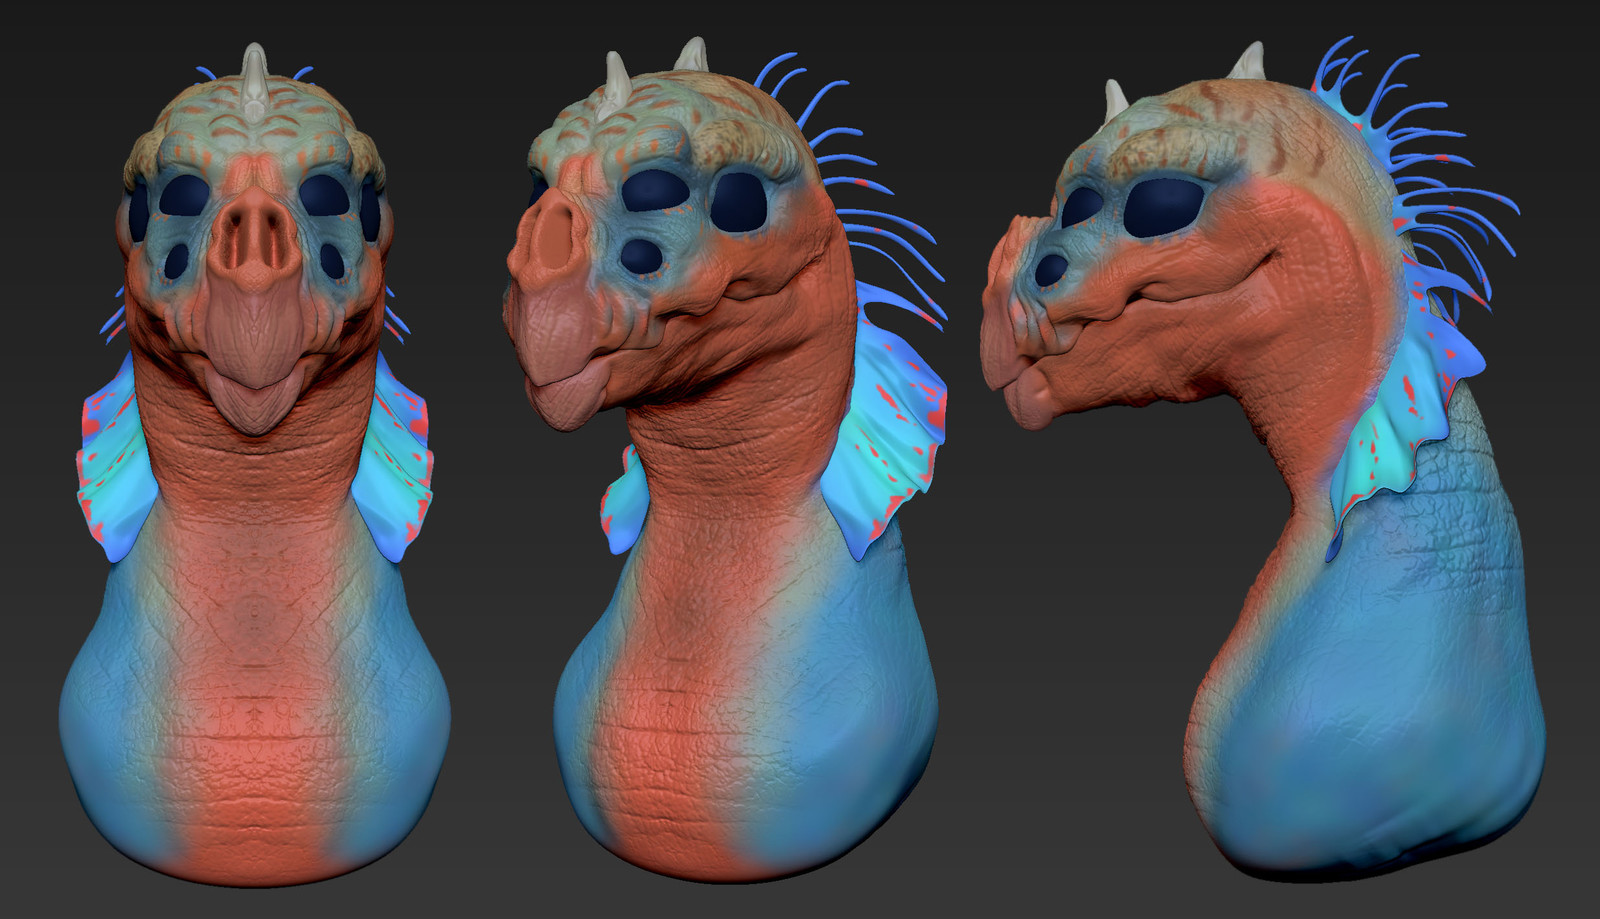 Zbrush Polypaint